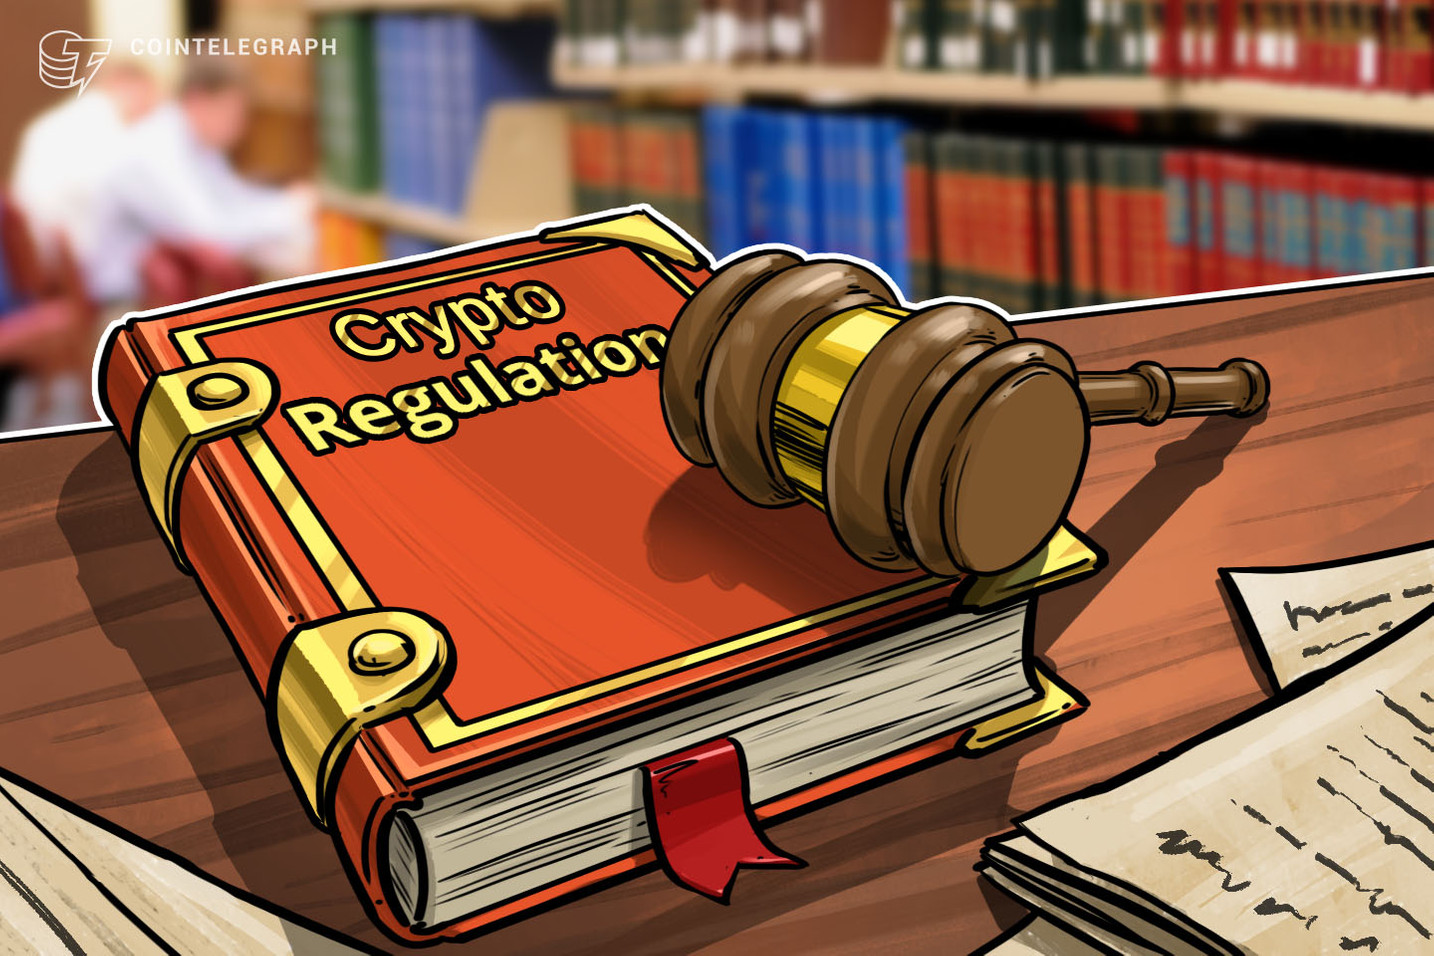 Report: EU to Discuss Further Crypto Regulation Amid Concerns About Lack of Transparency